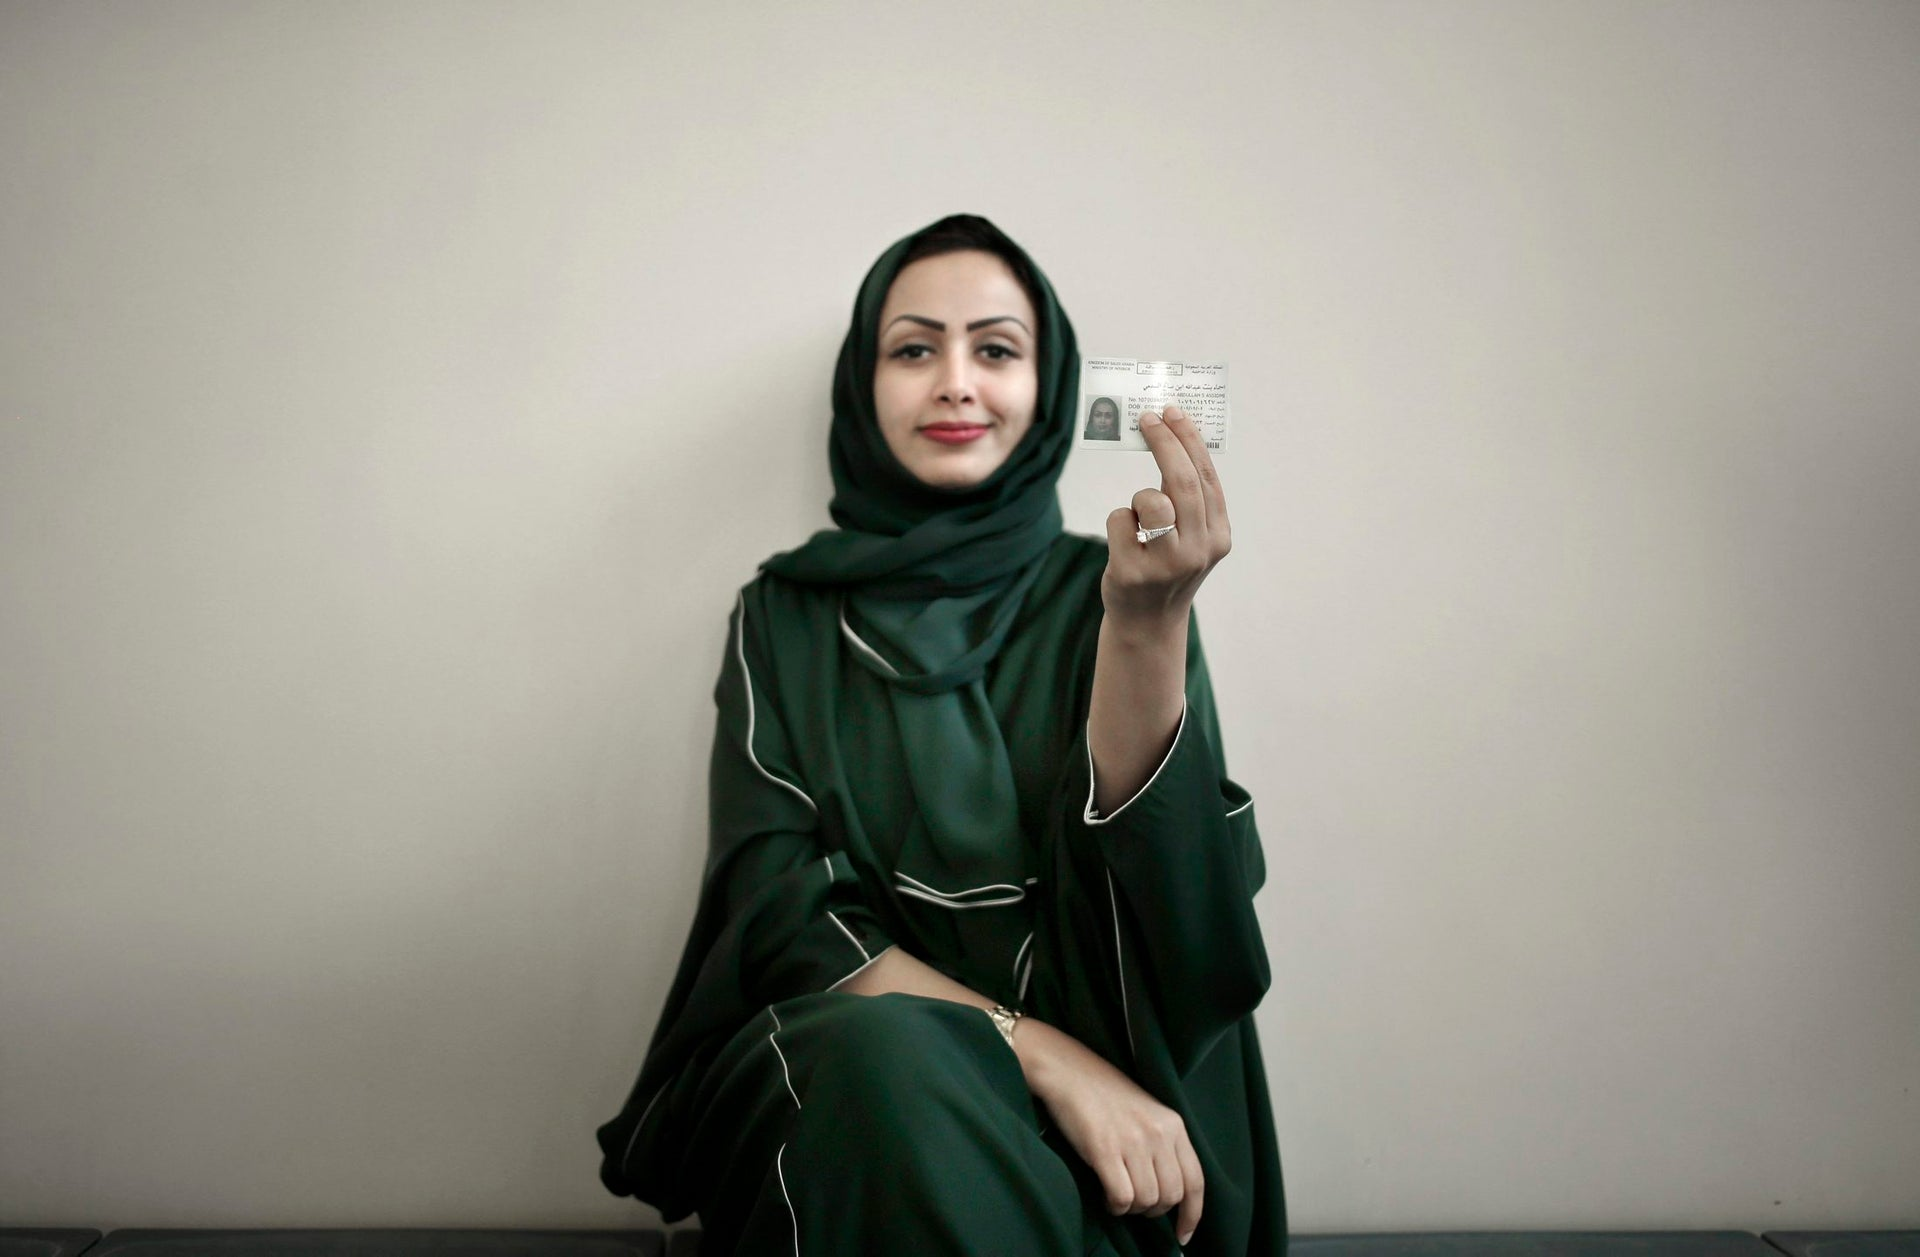 In this June 23, 2018 photo, 34-year old Asmaa al-Assdmi poses for a photograph holding her new car license at the Saudi Driving School inside Princess Nora University in Saudi Arabia.